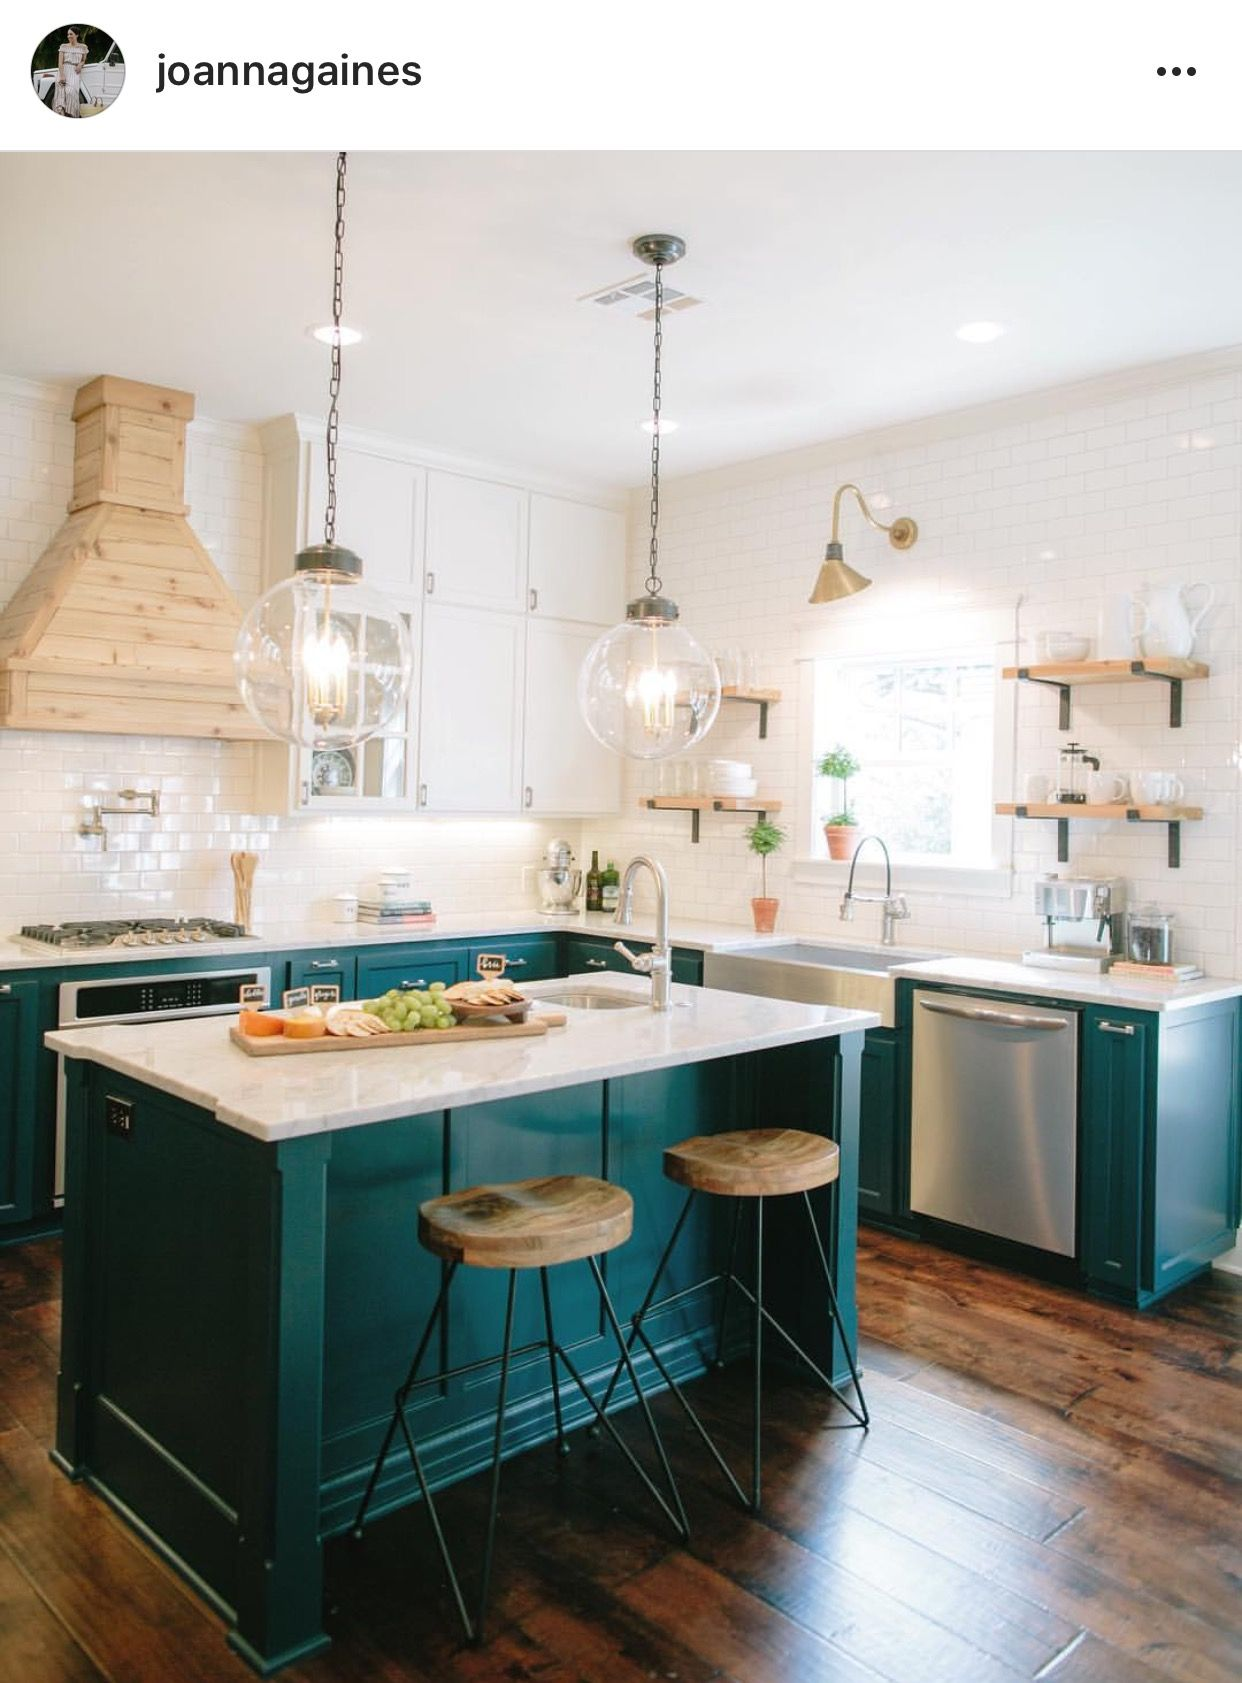 jewel tone tile kitchen home decor minimalistic boho home decor emerald green tile kitchen on kitchen ideas emerald green id=46229